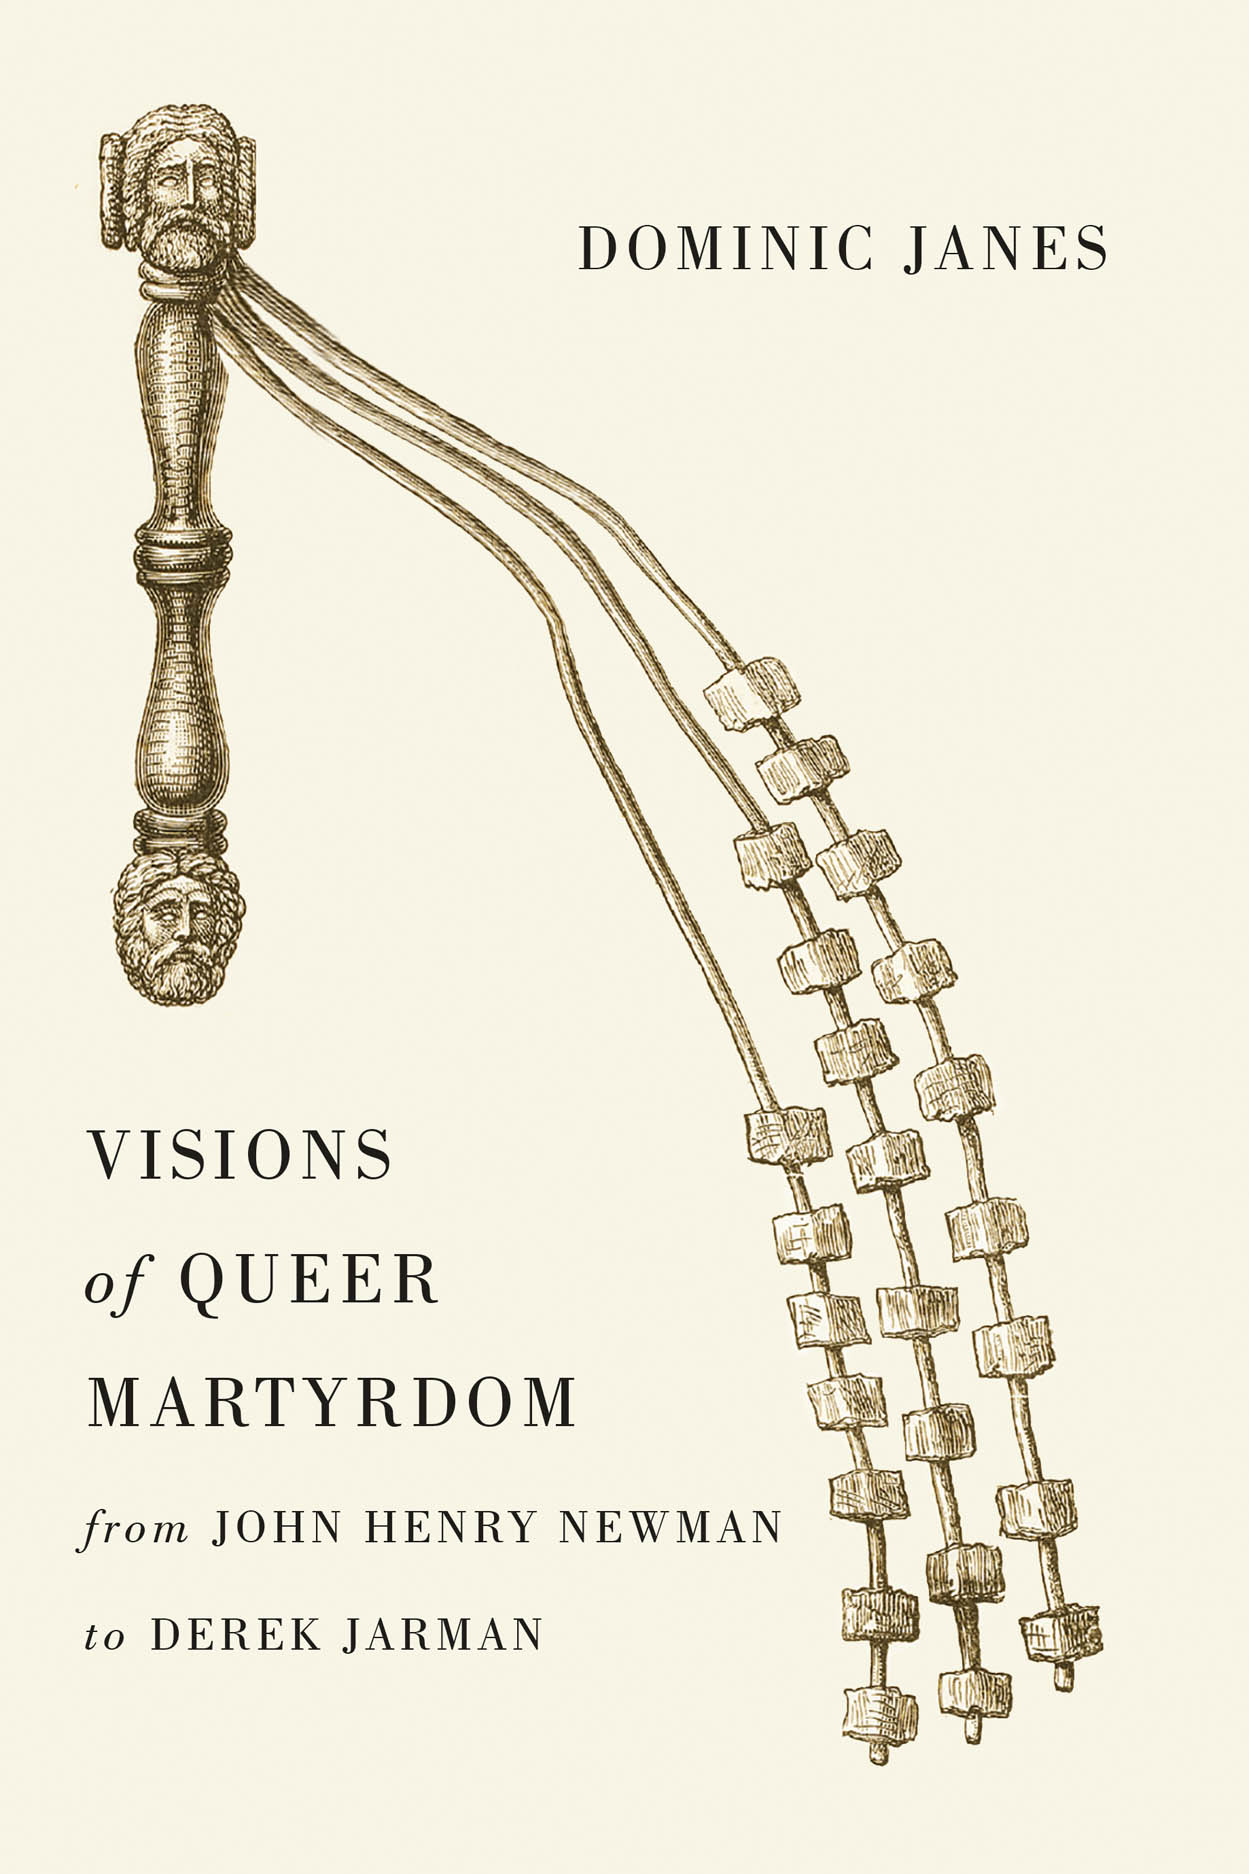 Visions of Queer Martyrdom from John Henry Newman to Derek Jarman